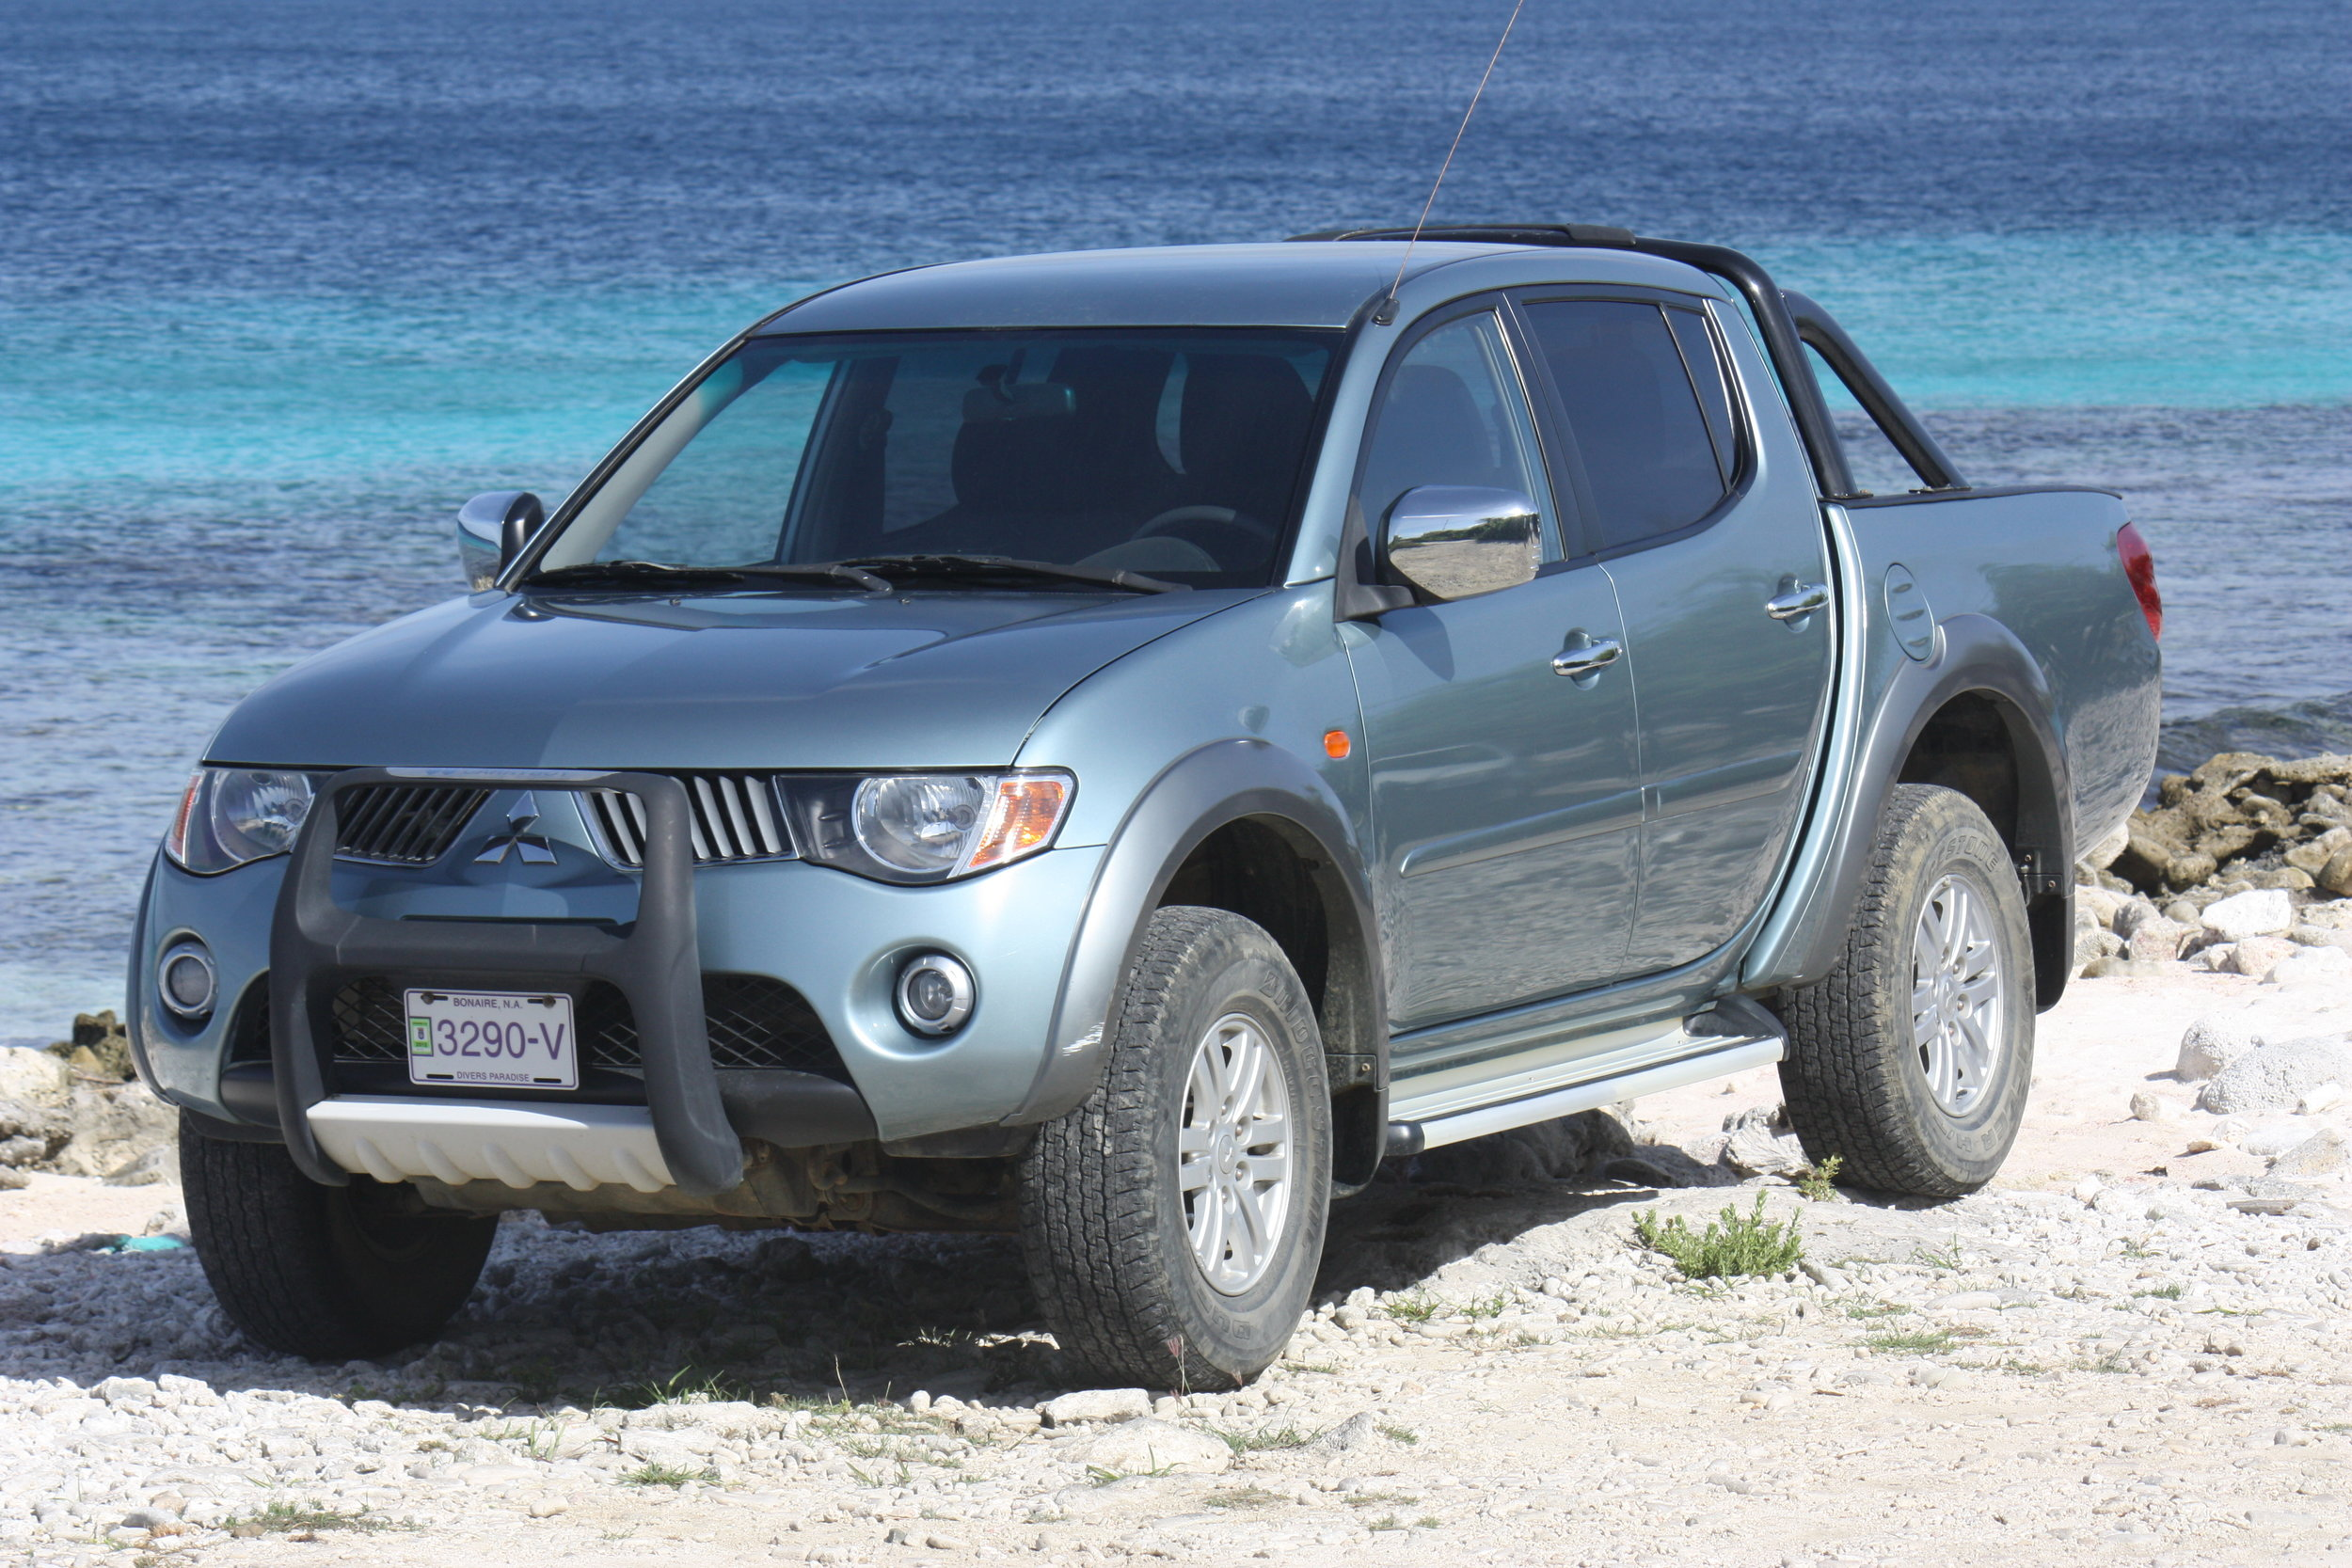 CAR   The island worthy pick-up seats 5 adults and comes with large cargo area, ideal for divers.